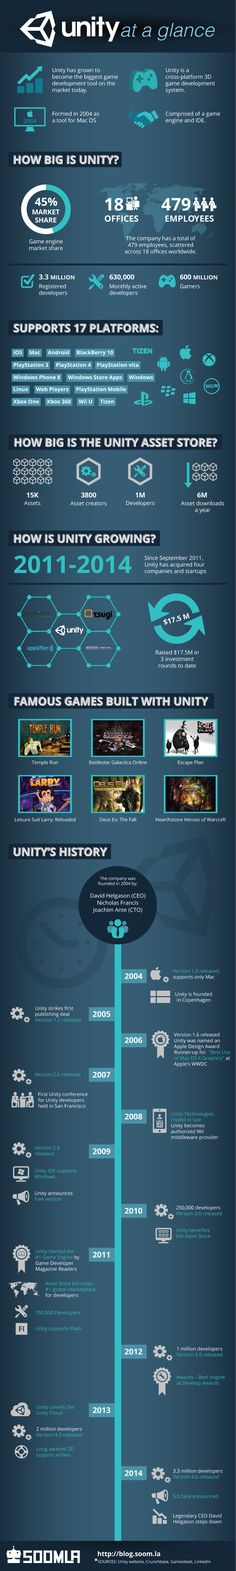 oncise and succinct as an infographic. That's why we decided to set out to remedy this shortcoming. So, fellow developers – lo and behold – we give you… the first ever Unity infographic!